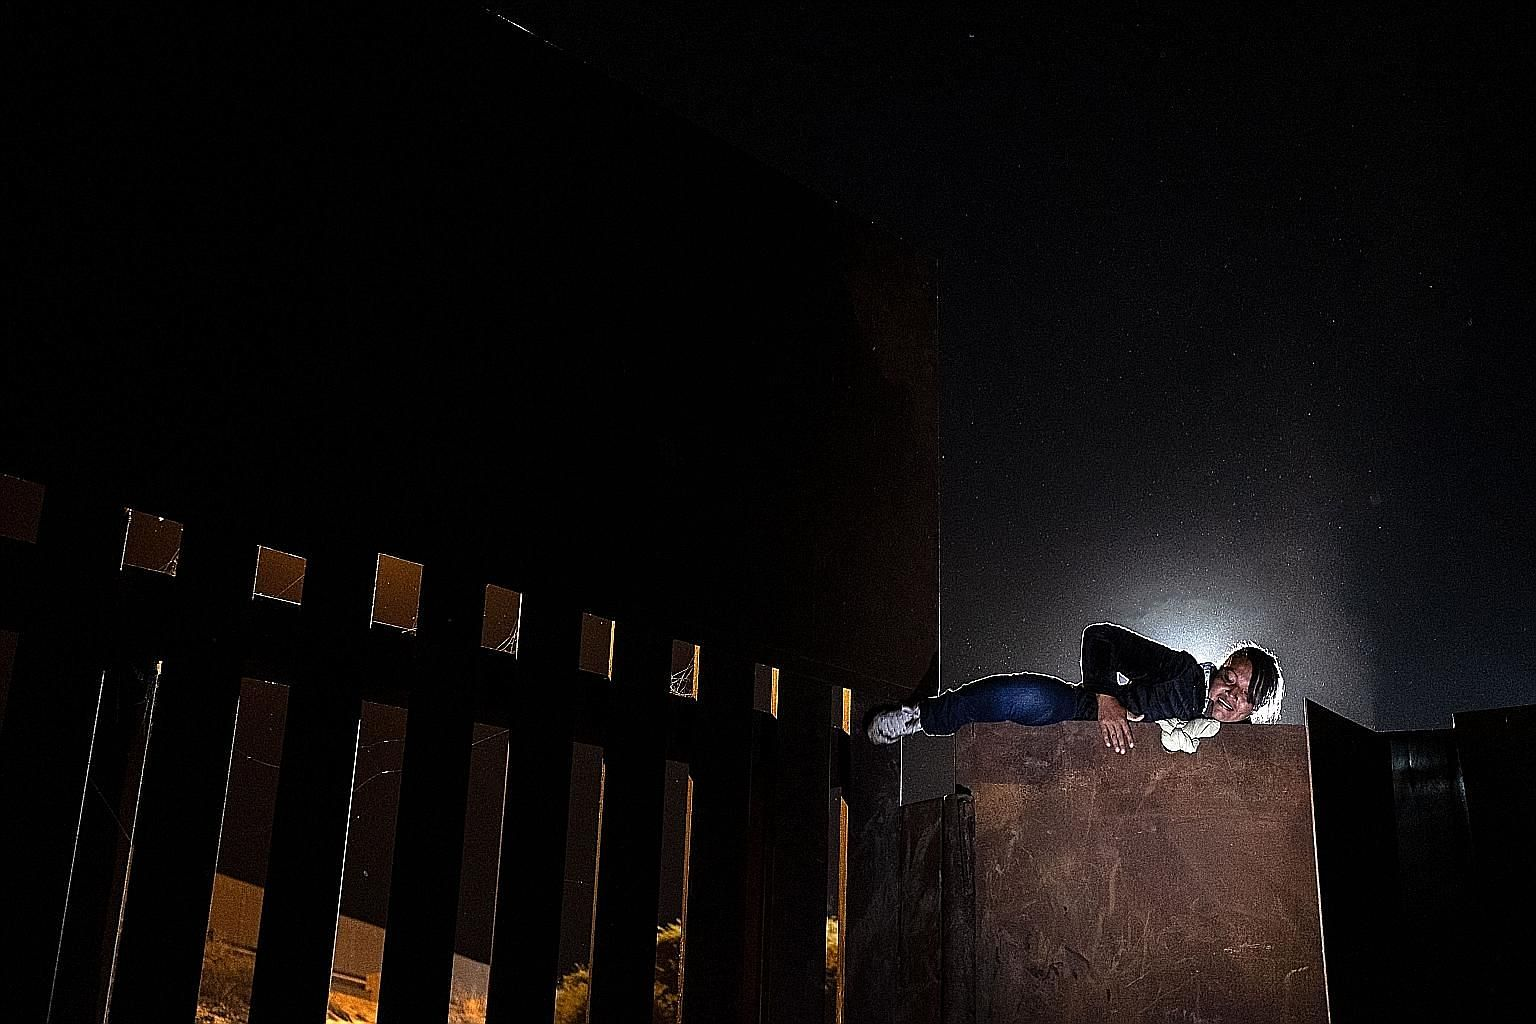 A woman who was part of a caravan of Central American migrants hoping to enter the United States climbing the metal barrier along the US-Mexico border in Playas de Tijuana, Mexico, on Monday.